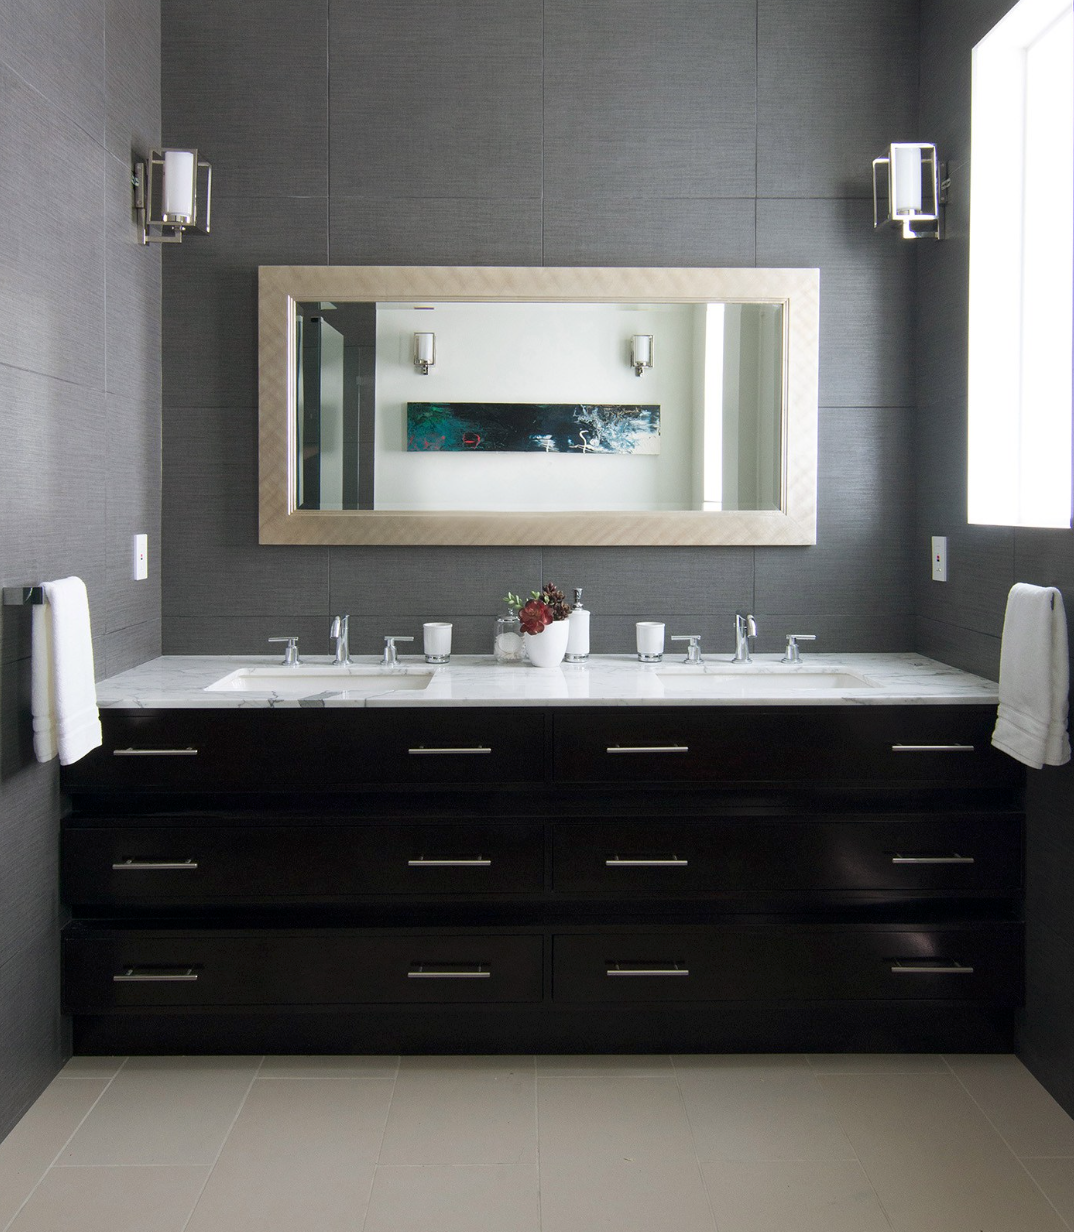 Beach House Bathroom Modern sleek masculine dark cabinets